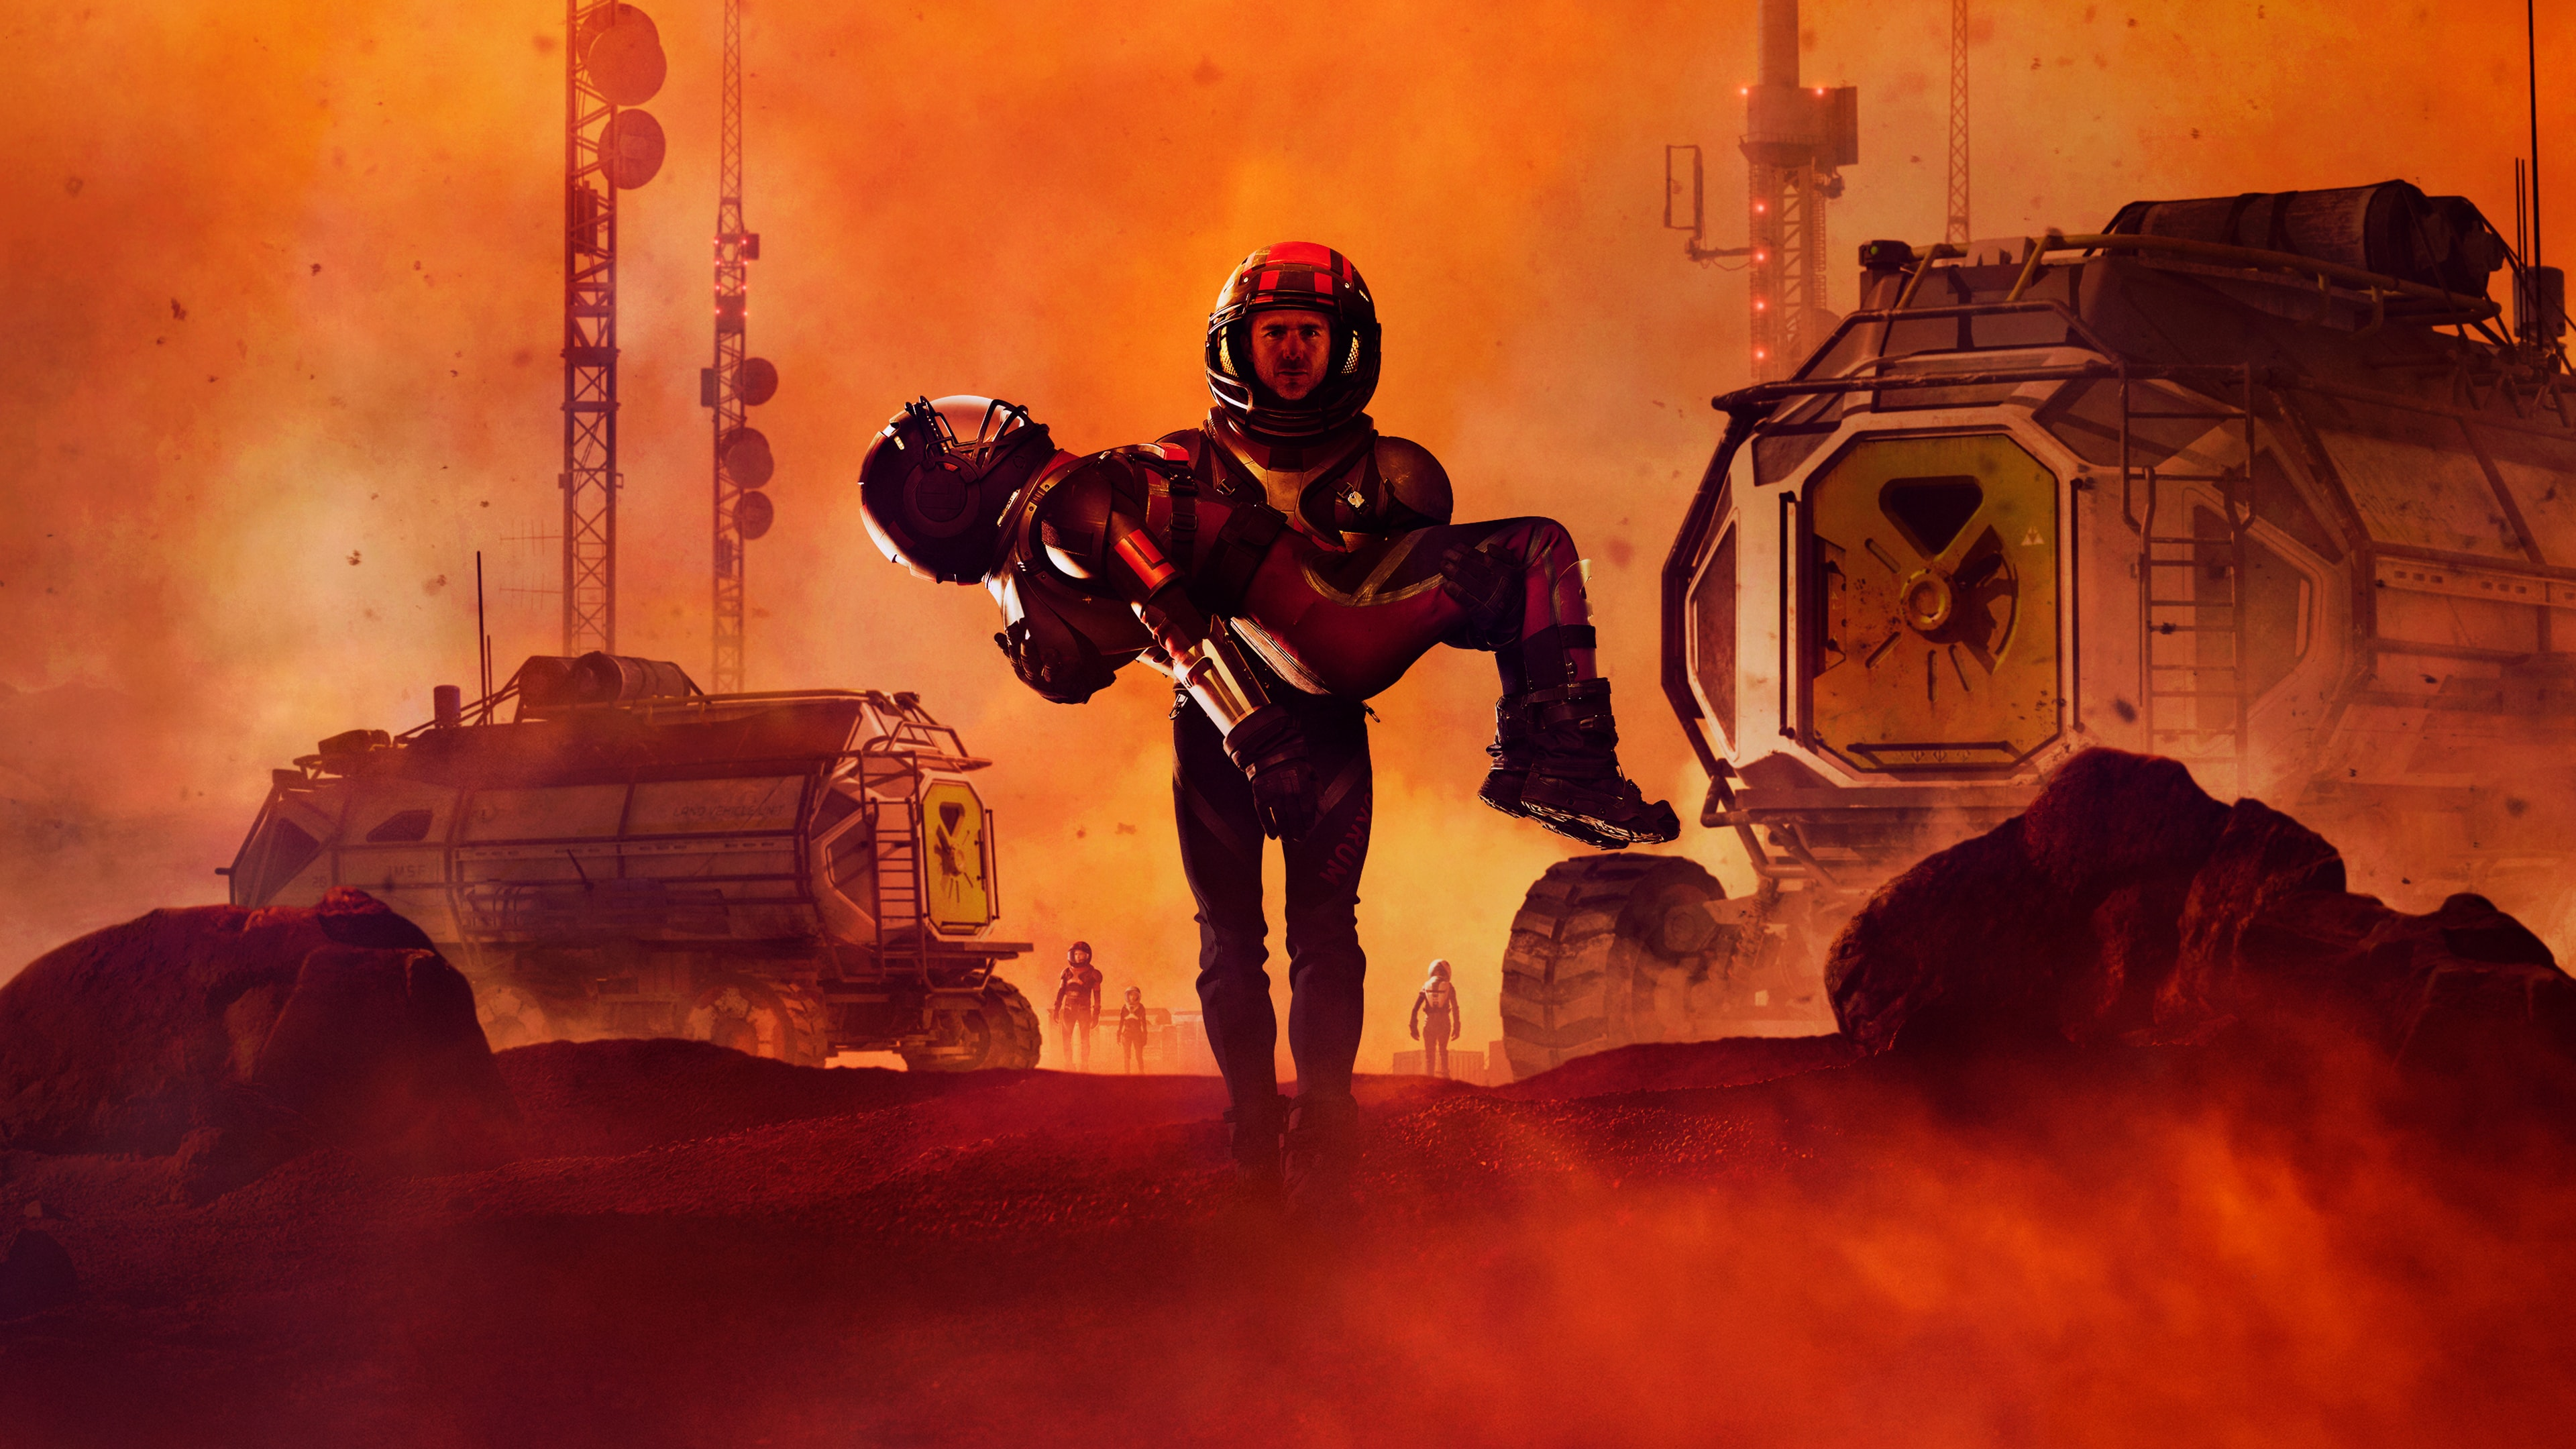 mission to mars full movie watch online free